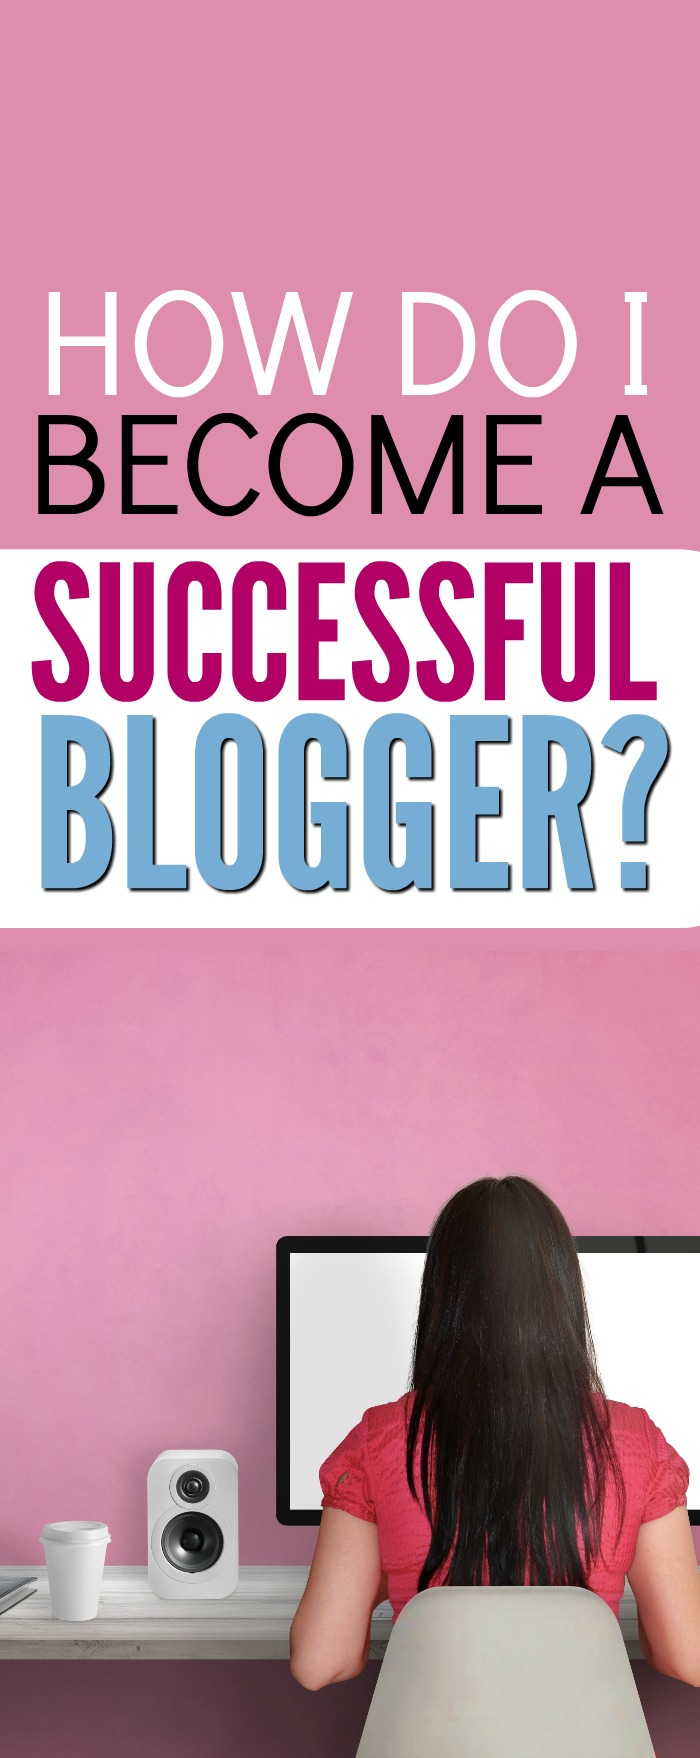 Let's go beyond how do I start a blog? Instead, how will I structure a blog? How will I know what to do next? Here's how you can make money blogging and grow your site into an actual career.